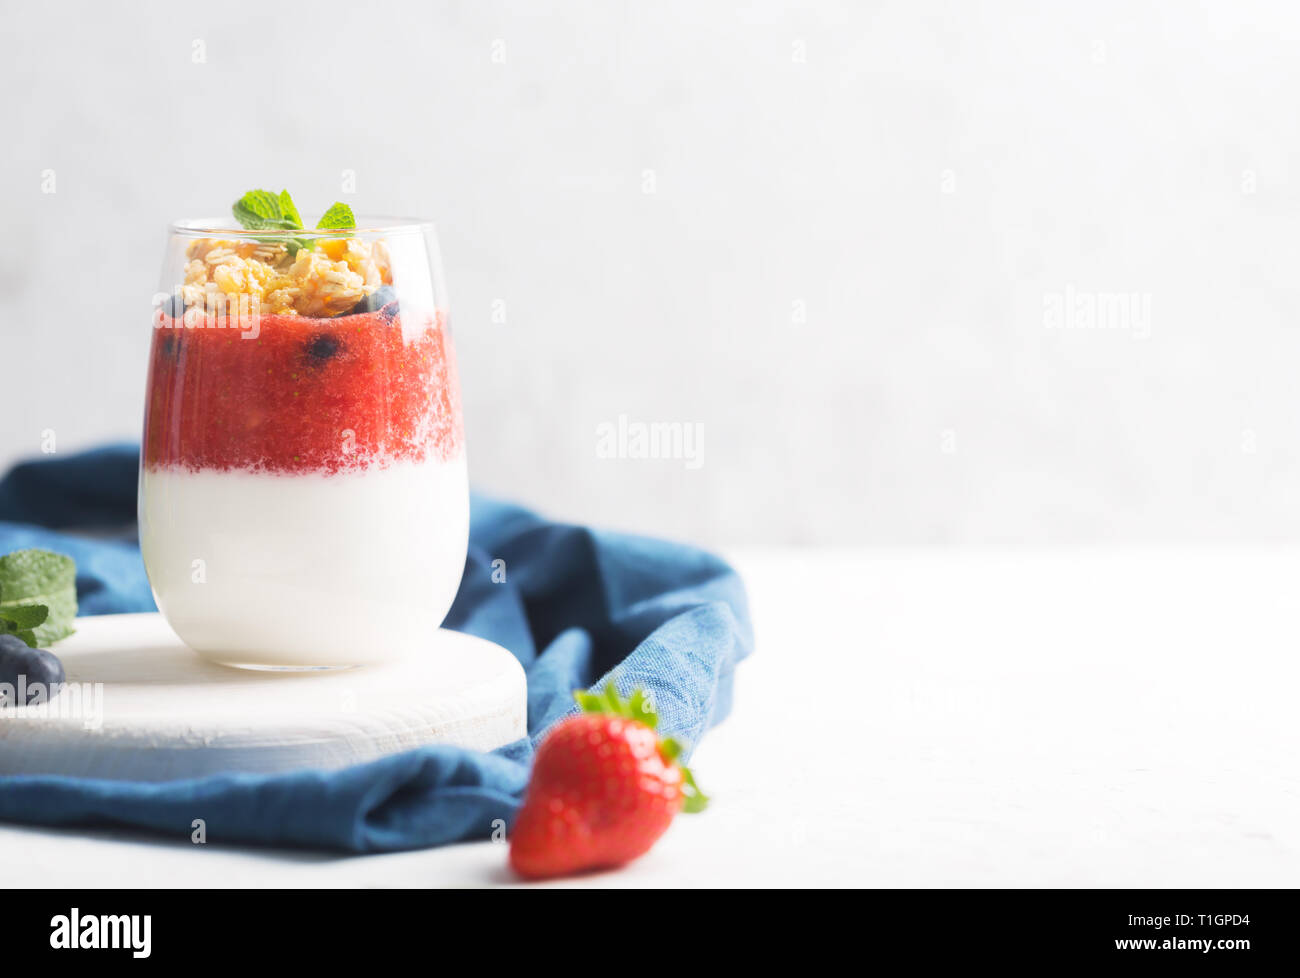 Glass of yogurt or panna cotta with strawberry mousse and granola on a white background - Stock Image